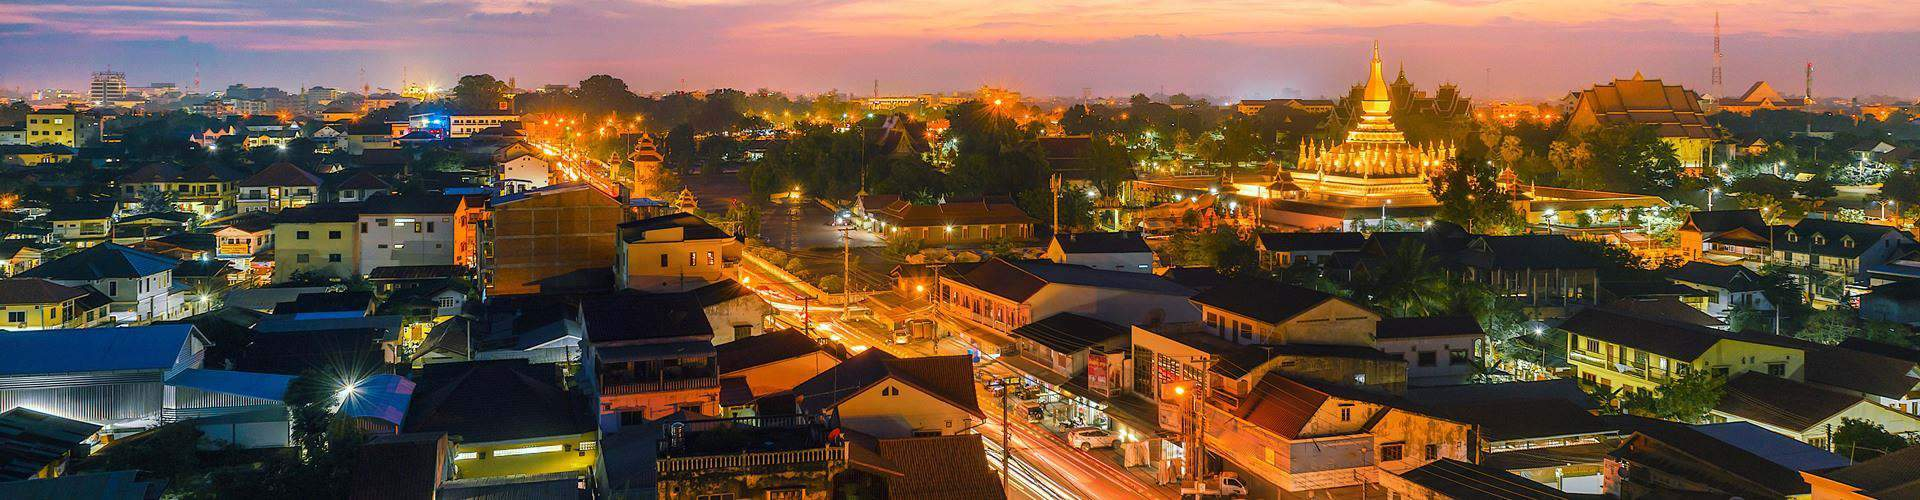 The night scene of downtown Vientiane